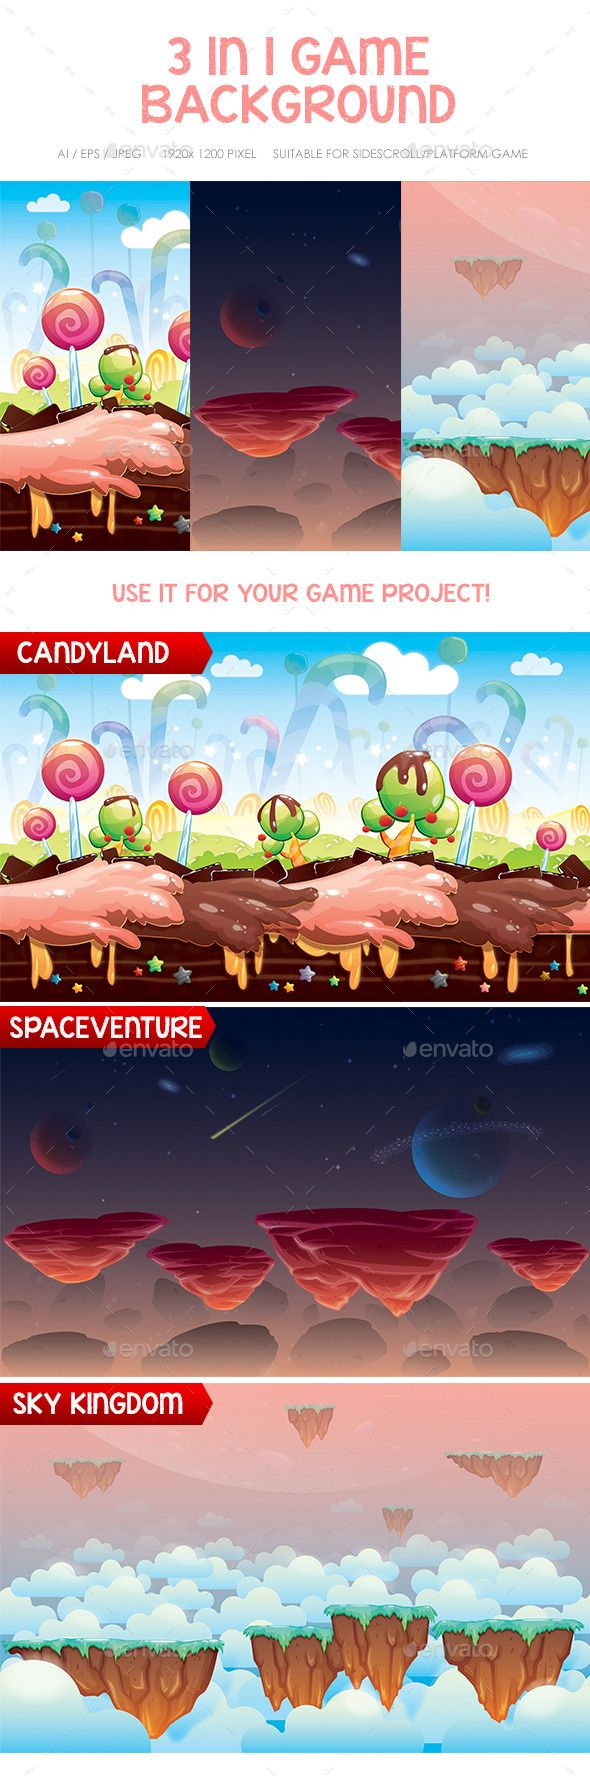 Space, Candy & Sky Game Background (Backgrounds)